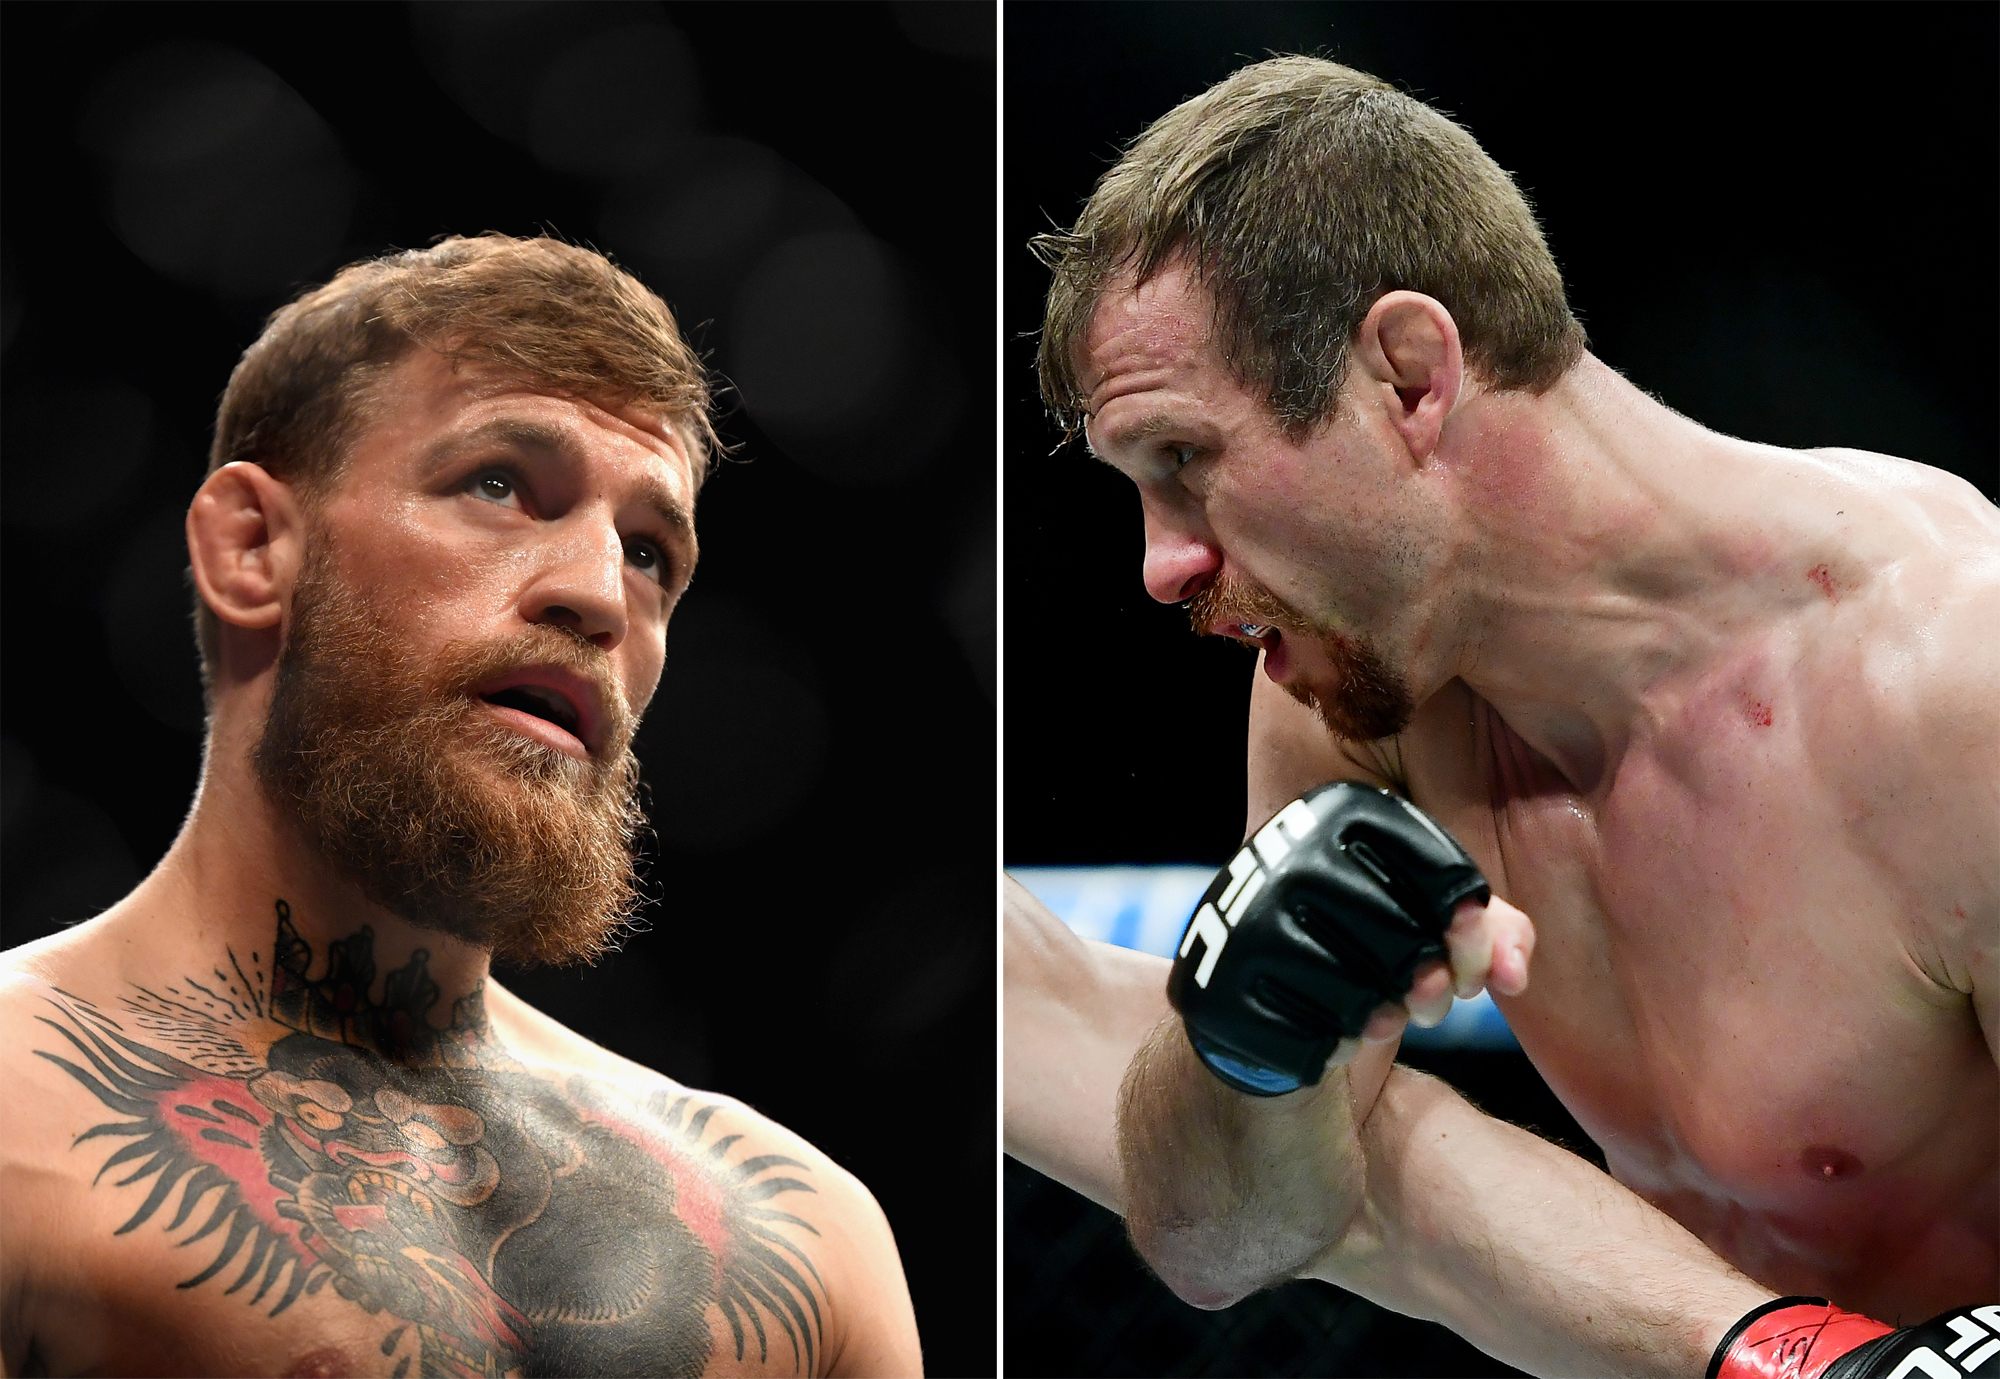 Conor McGregor vs Donald Cerrone